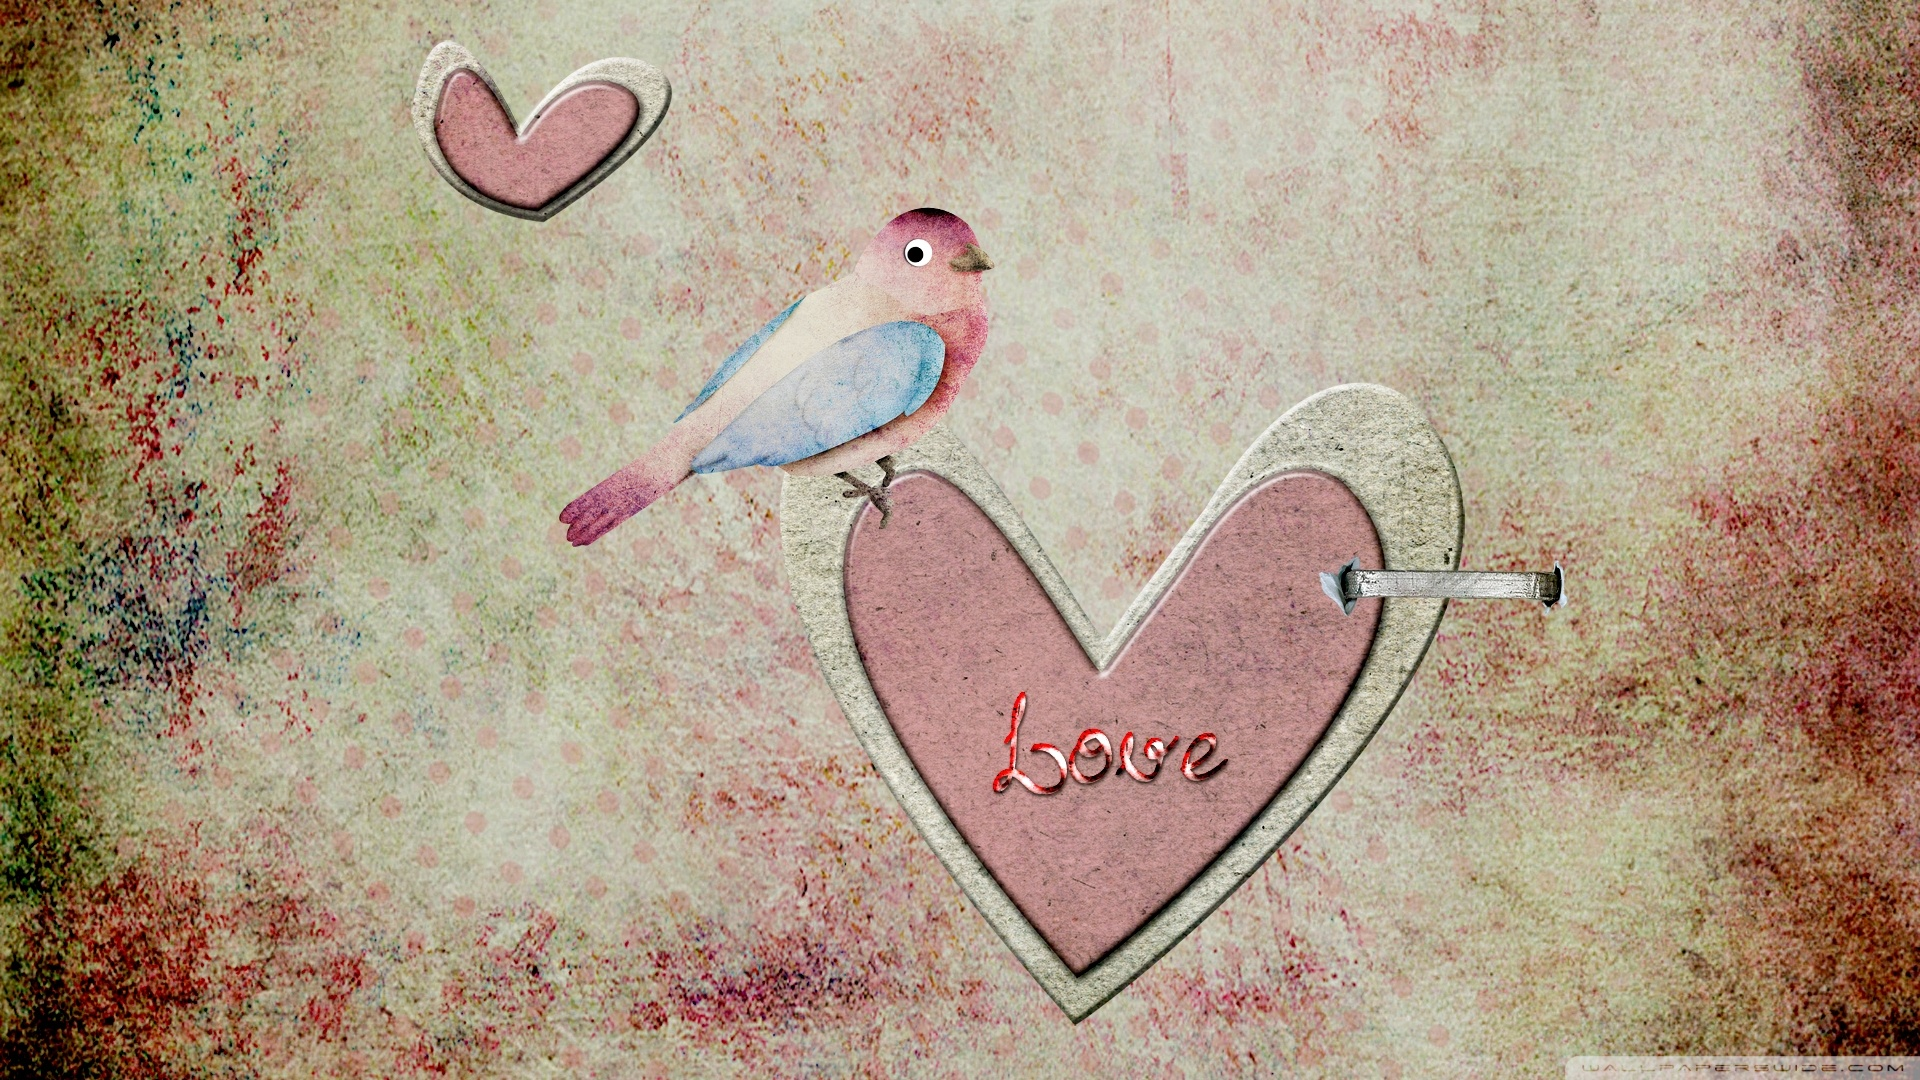 vintage love art wallpaper 1920x1080 28245